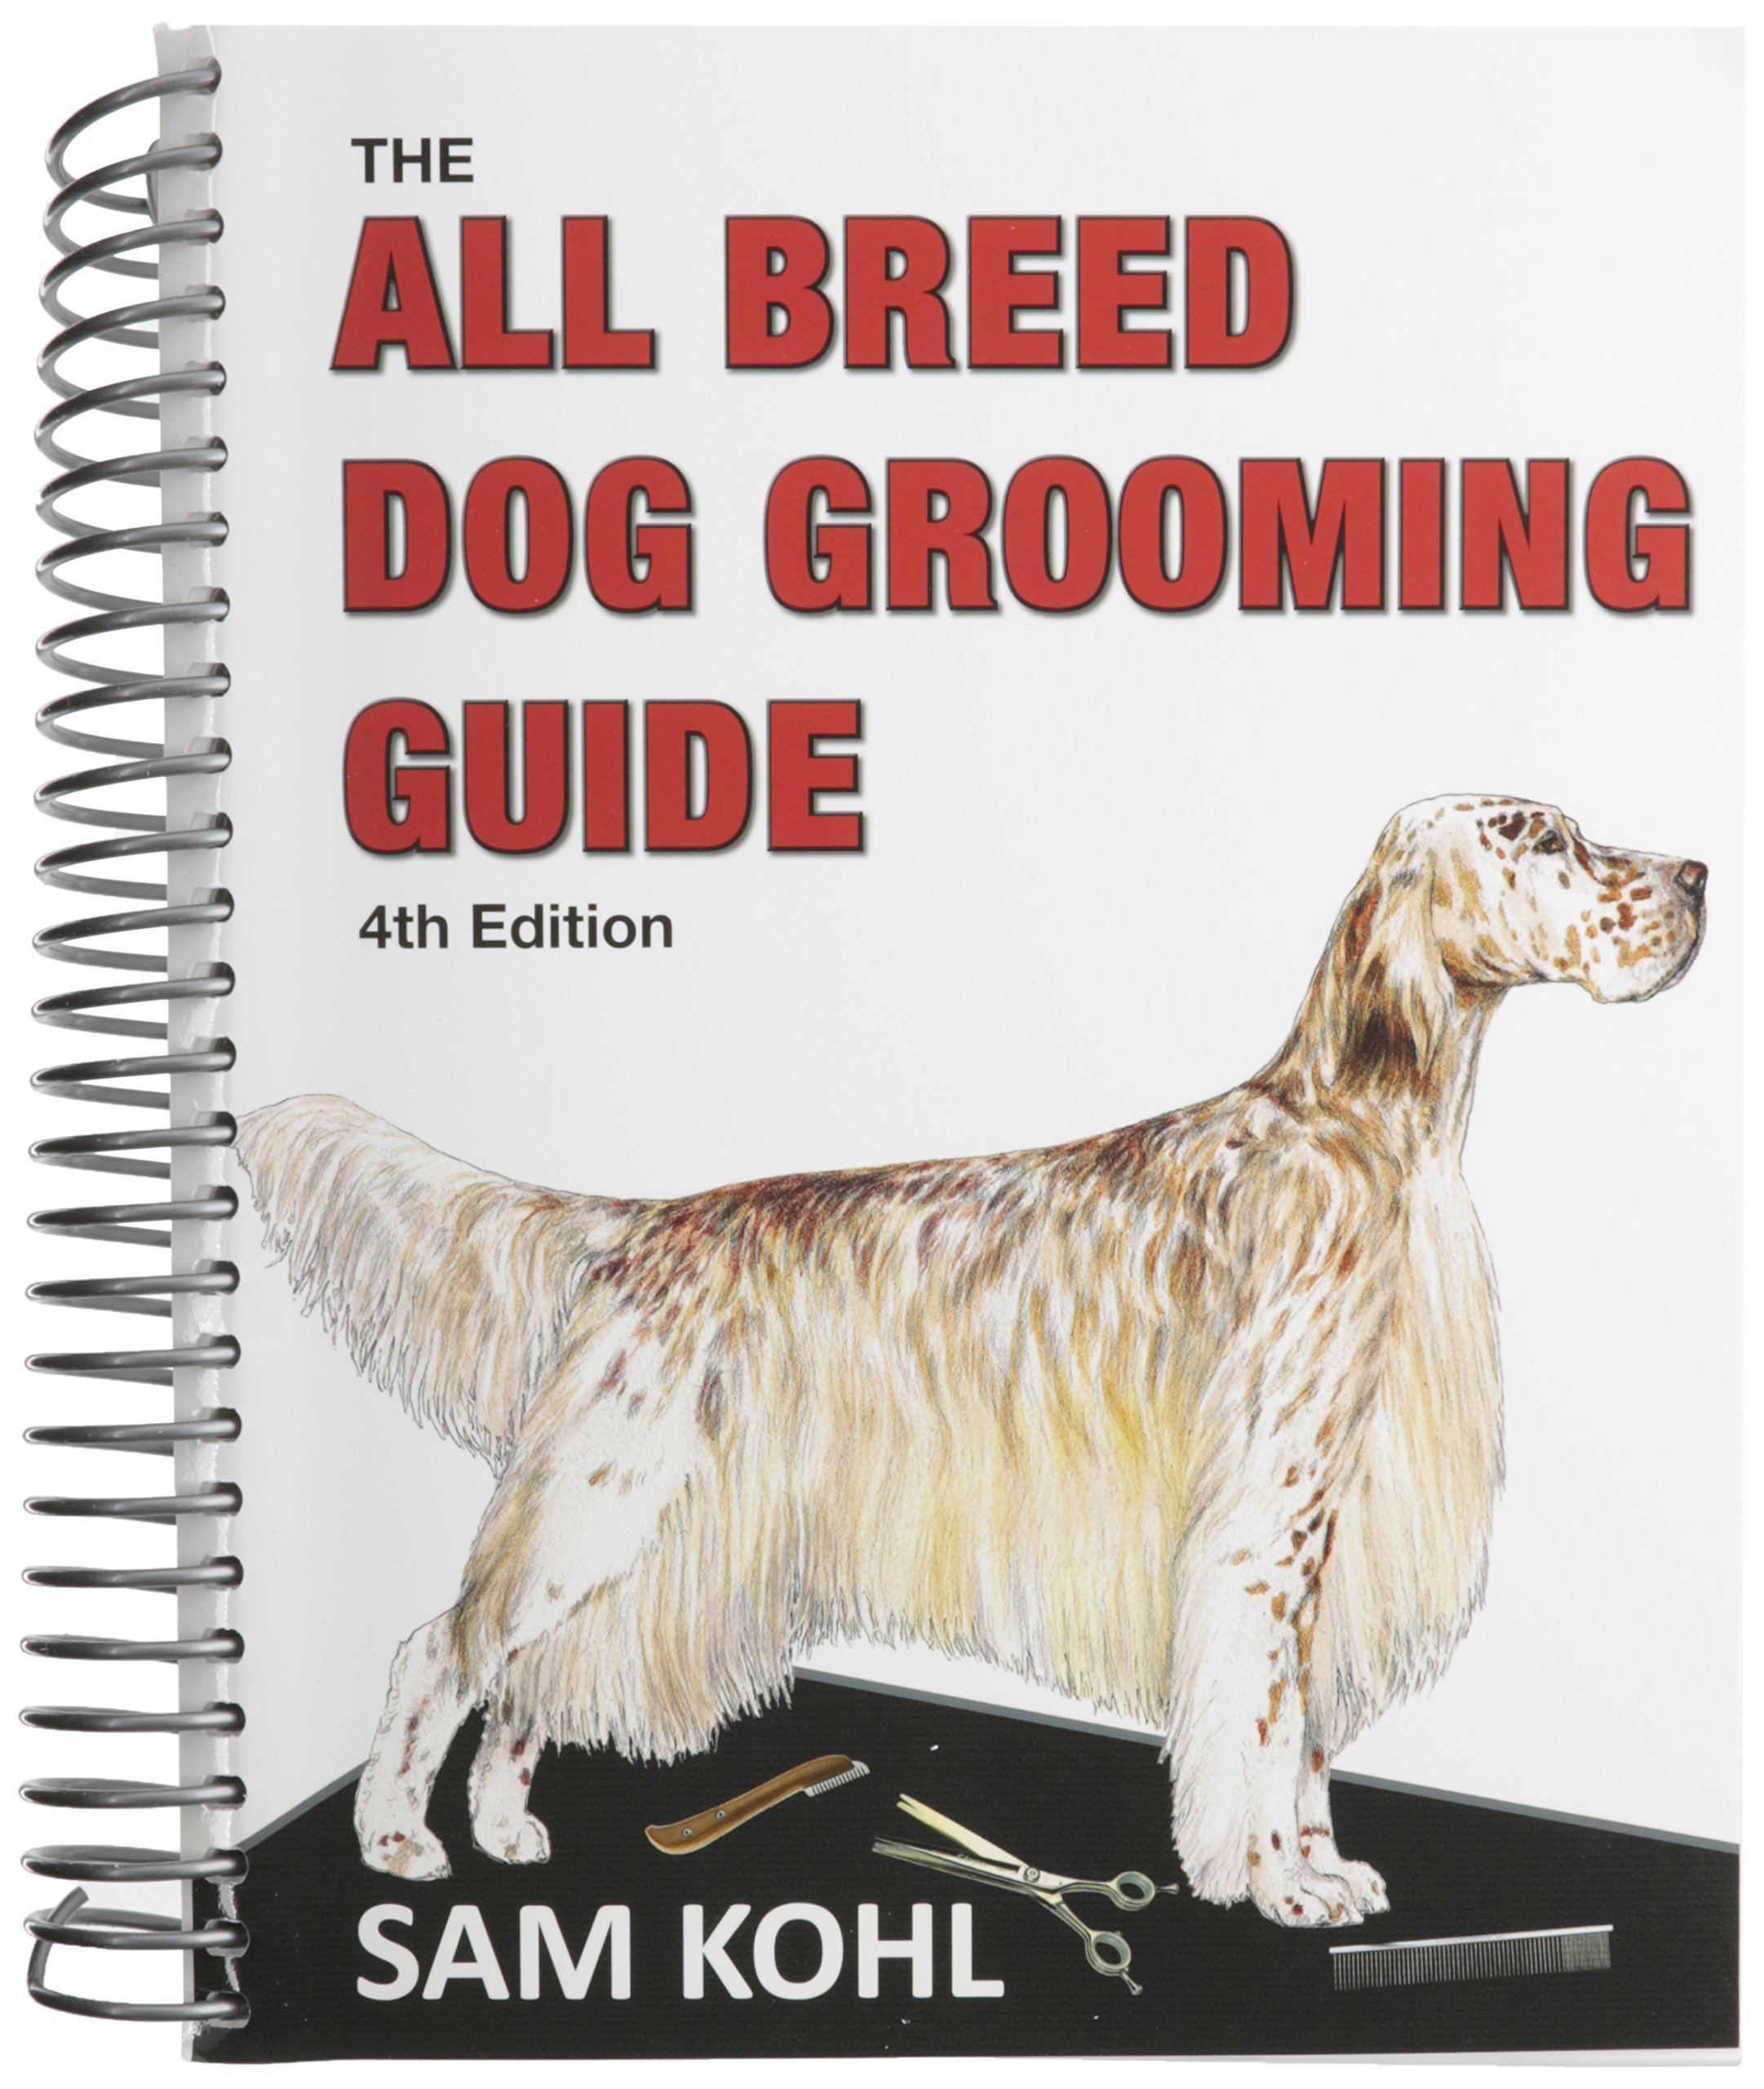 The All Breed Dog Grooming Guide by Aaronco Pet Products